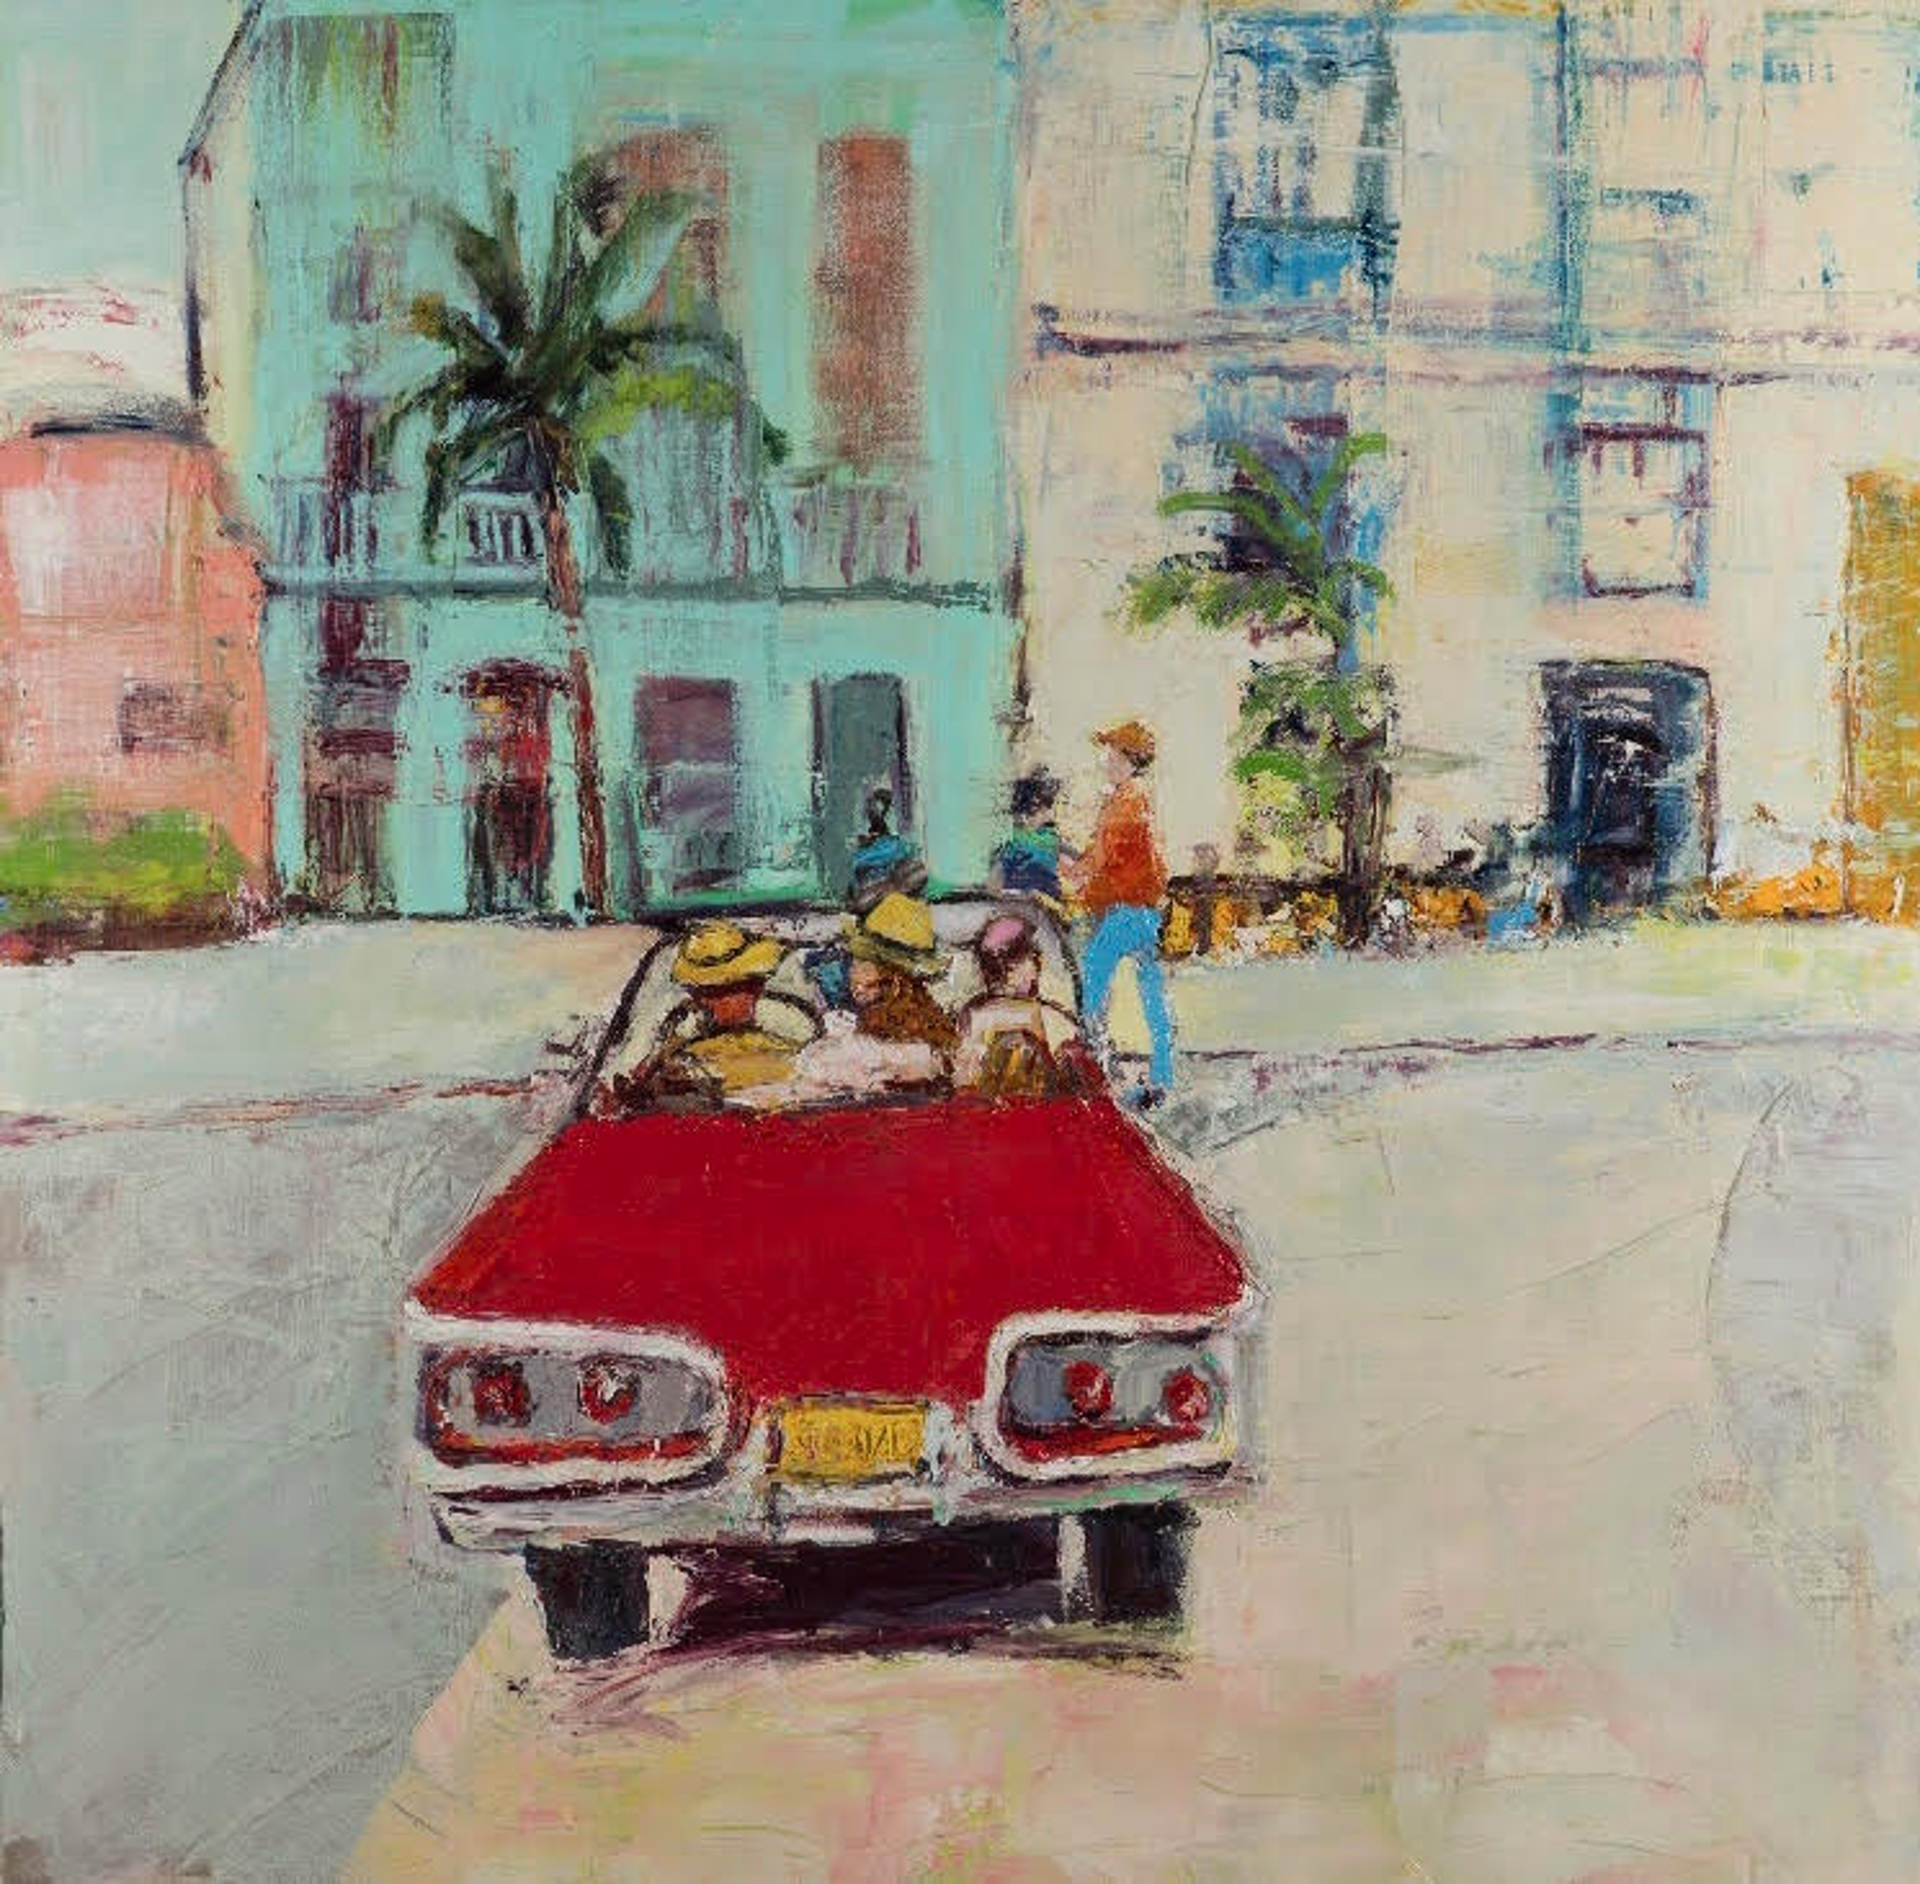 La Vida Cuba: Red Convertible by Ana Guzman